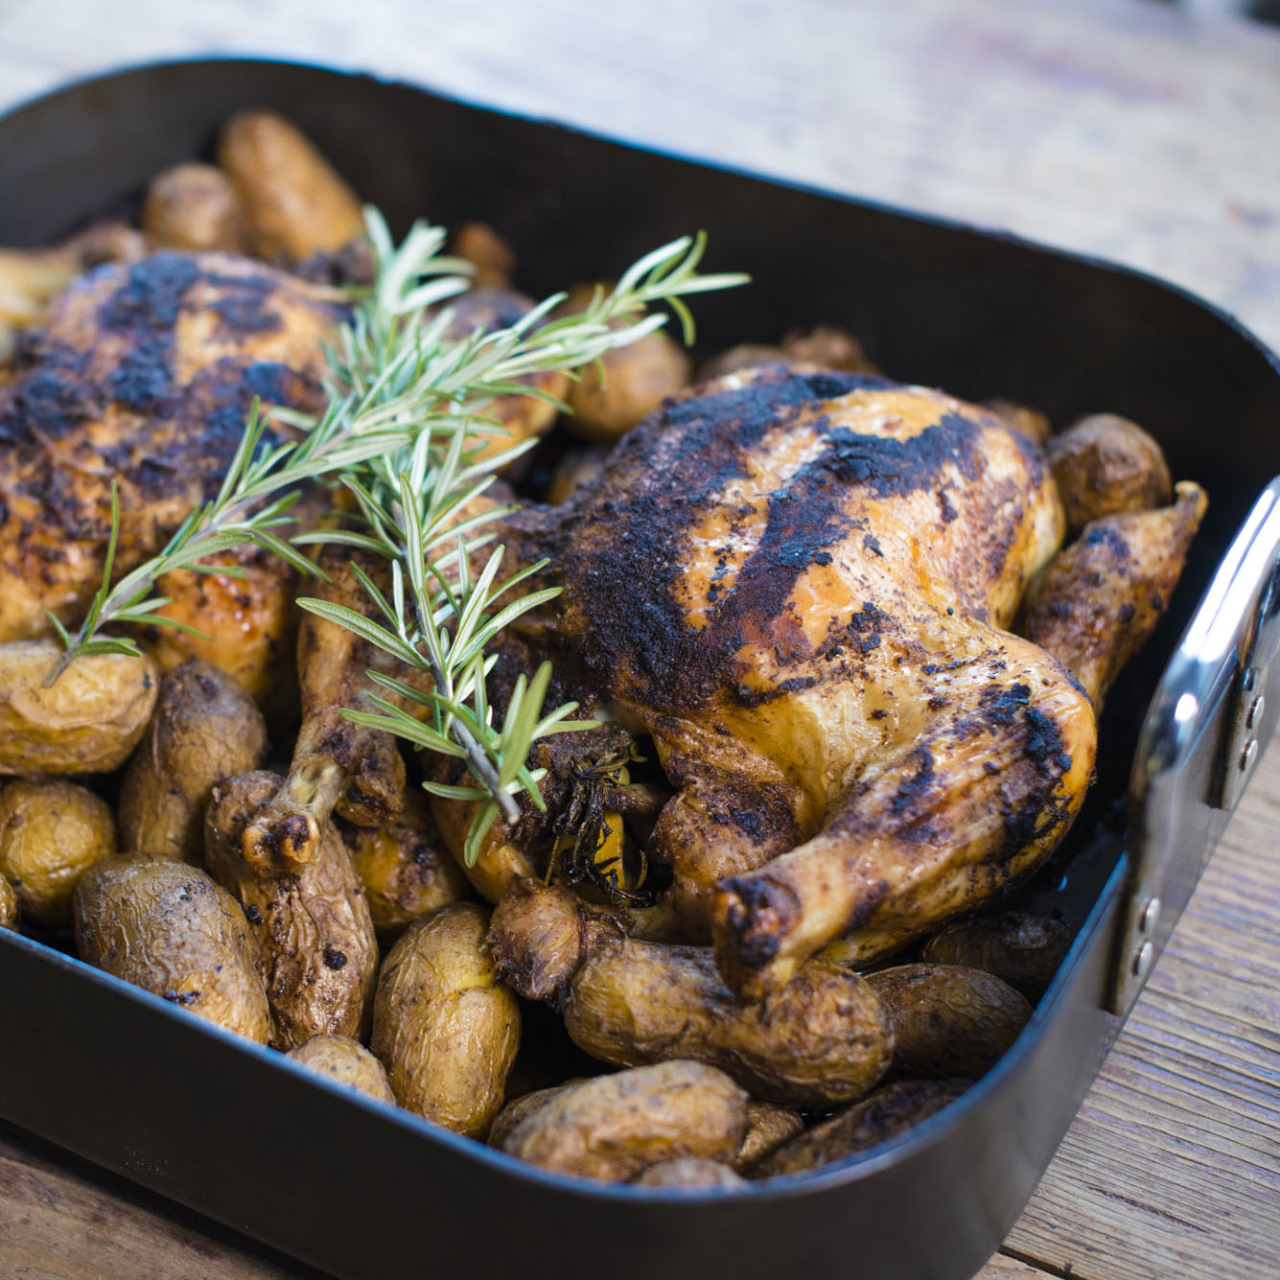 roasted potatoes and chicken.